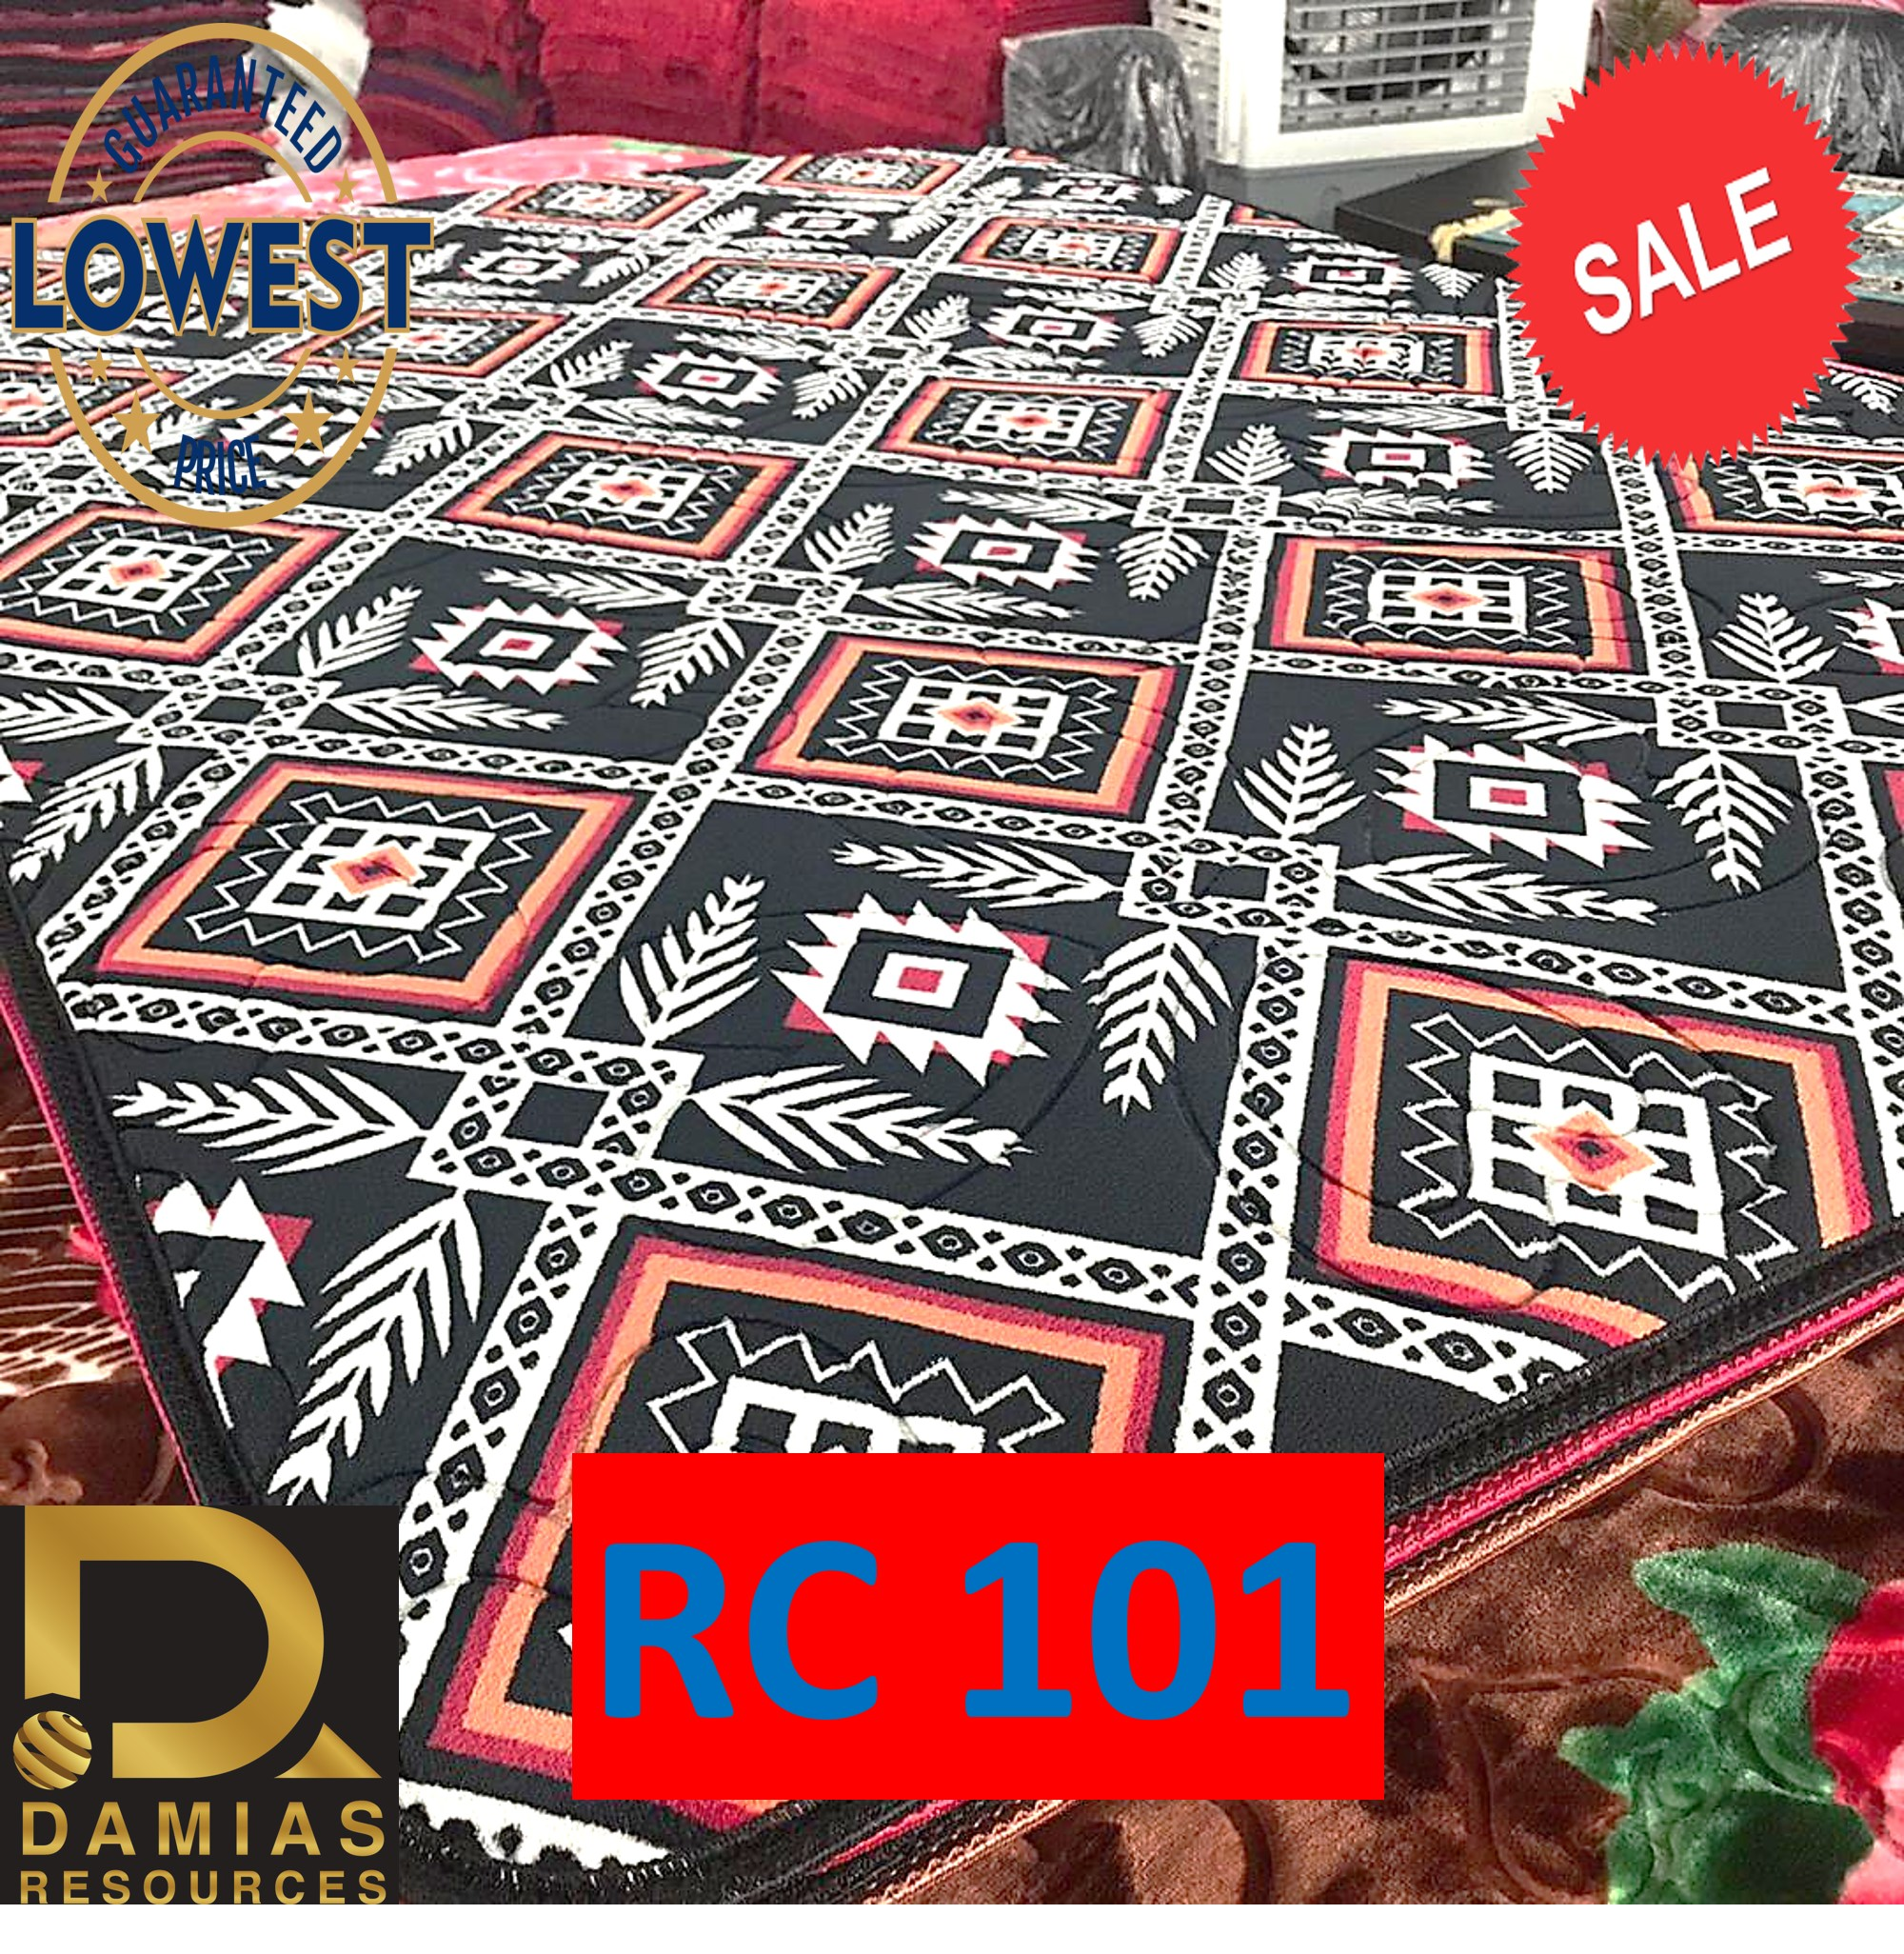 lowest price!!!Tatami Carpet/Anti-Slip Floor mat/Carpet Floor mats/ DAMIAS style Home Living Bedroom